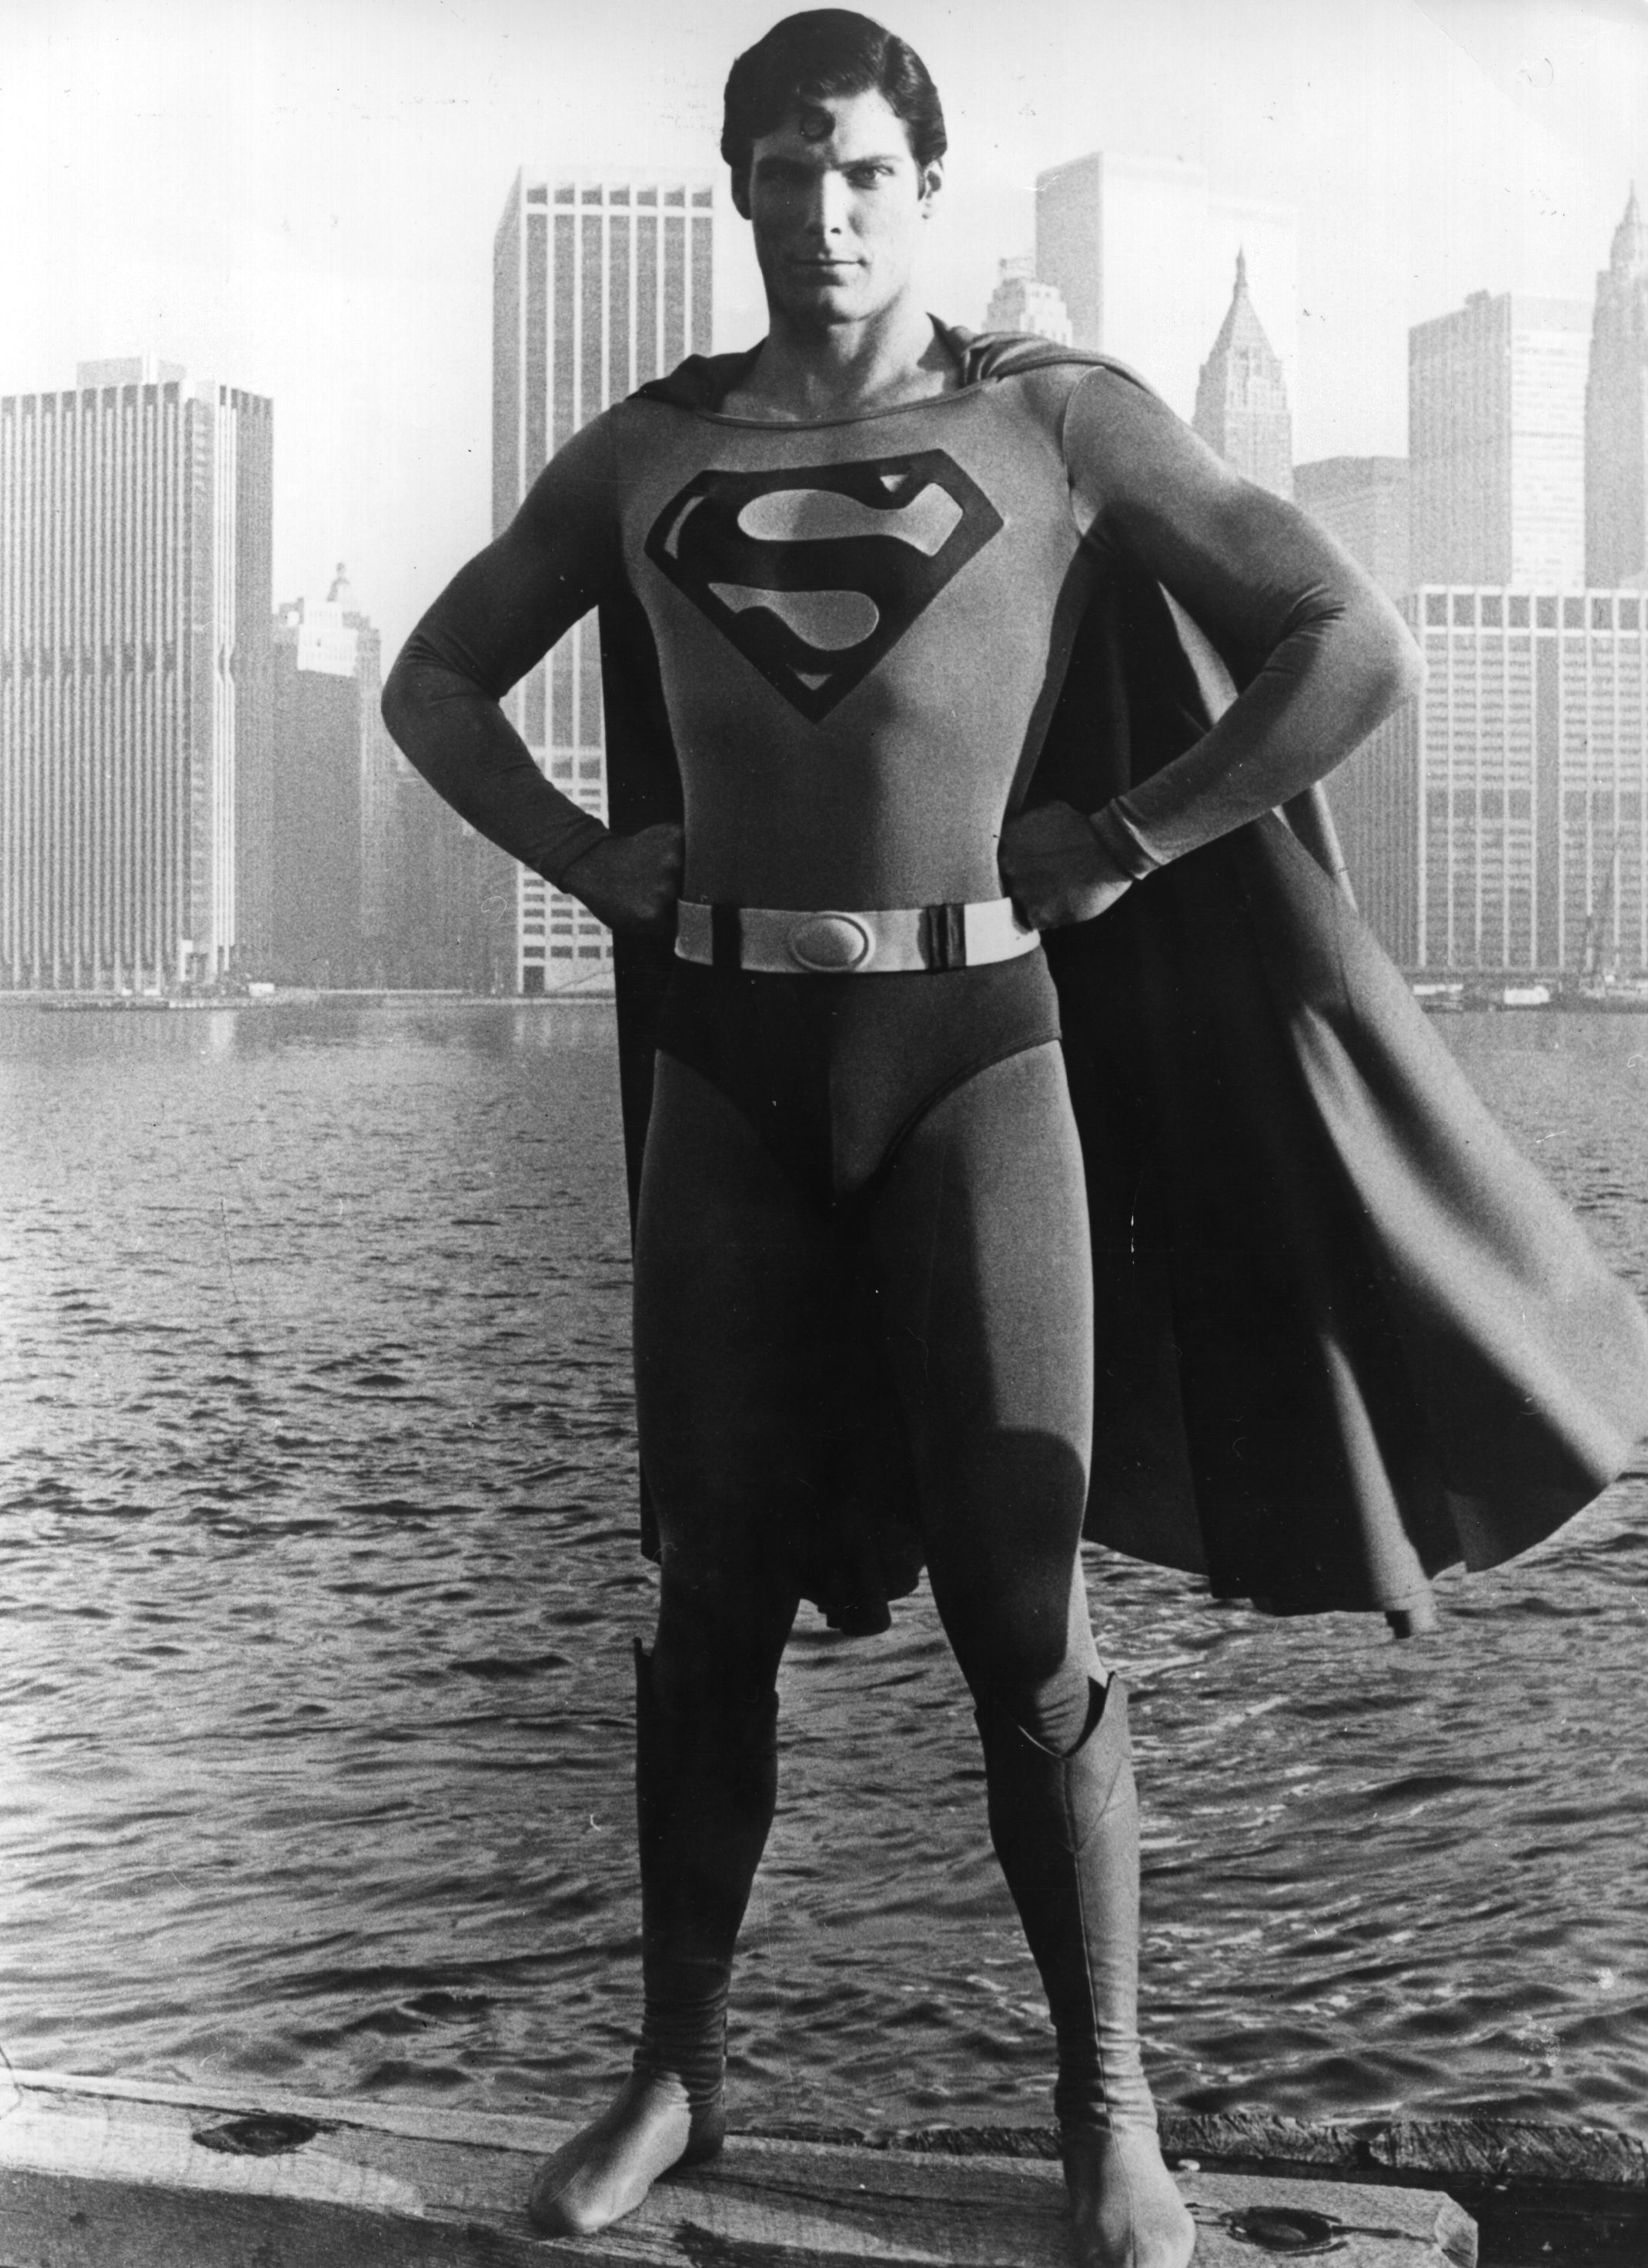 Chris Reeve as Superman 1976 | Photo: Getty Images